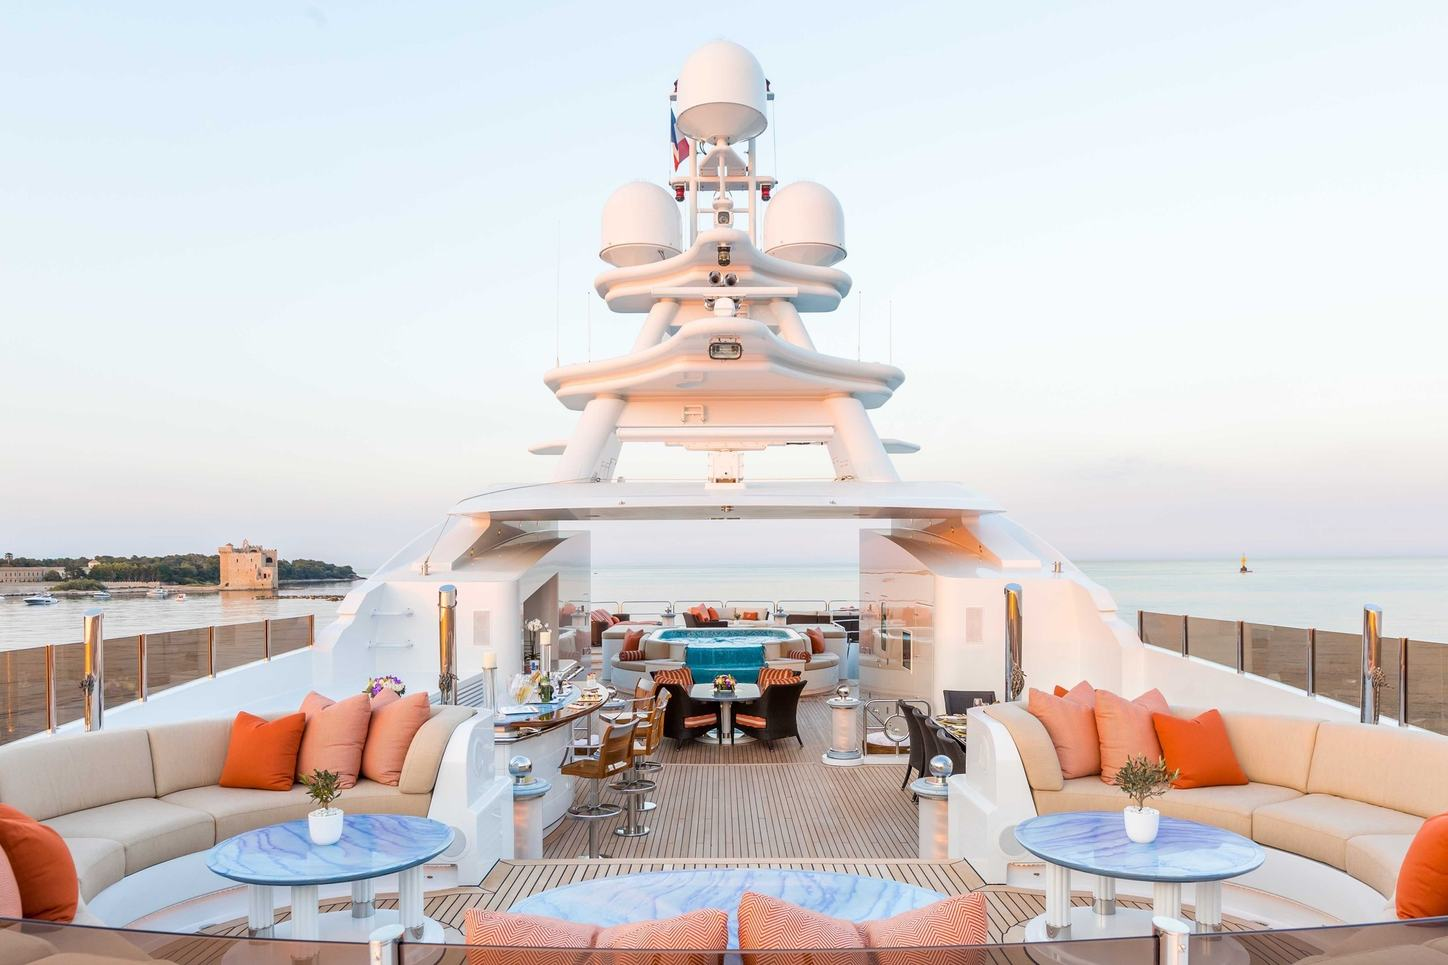 seating areas, bar and spa pool on the sundeck of motor yacht Lucky Lady